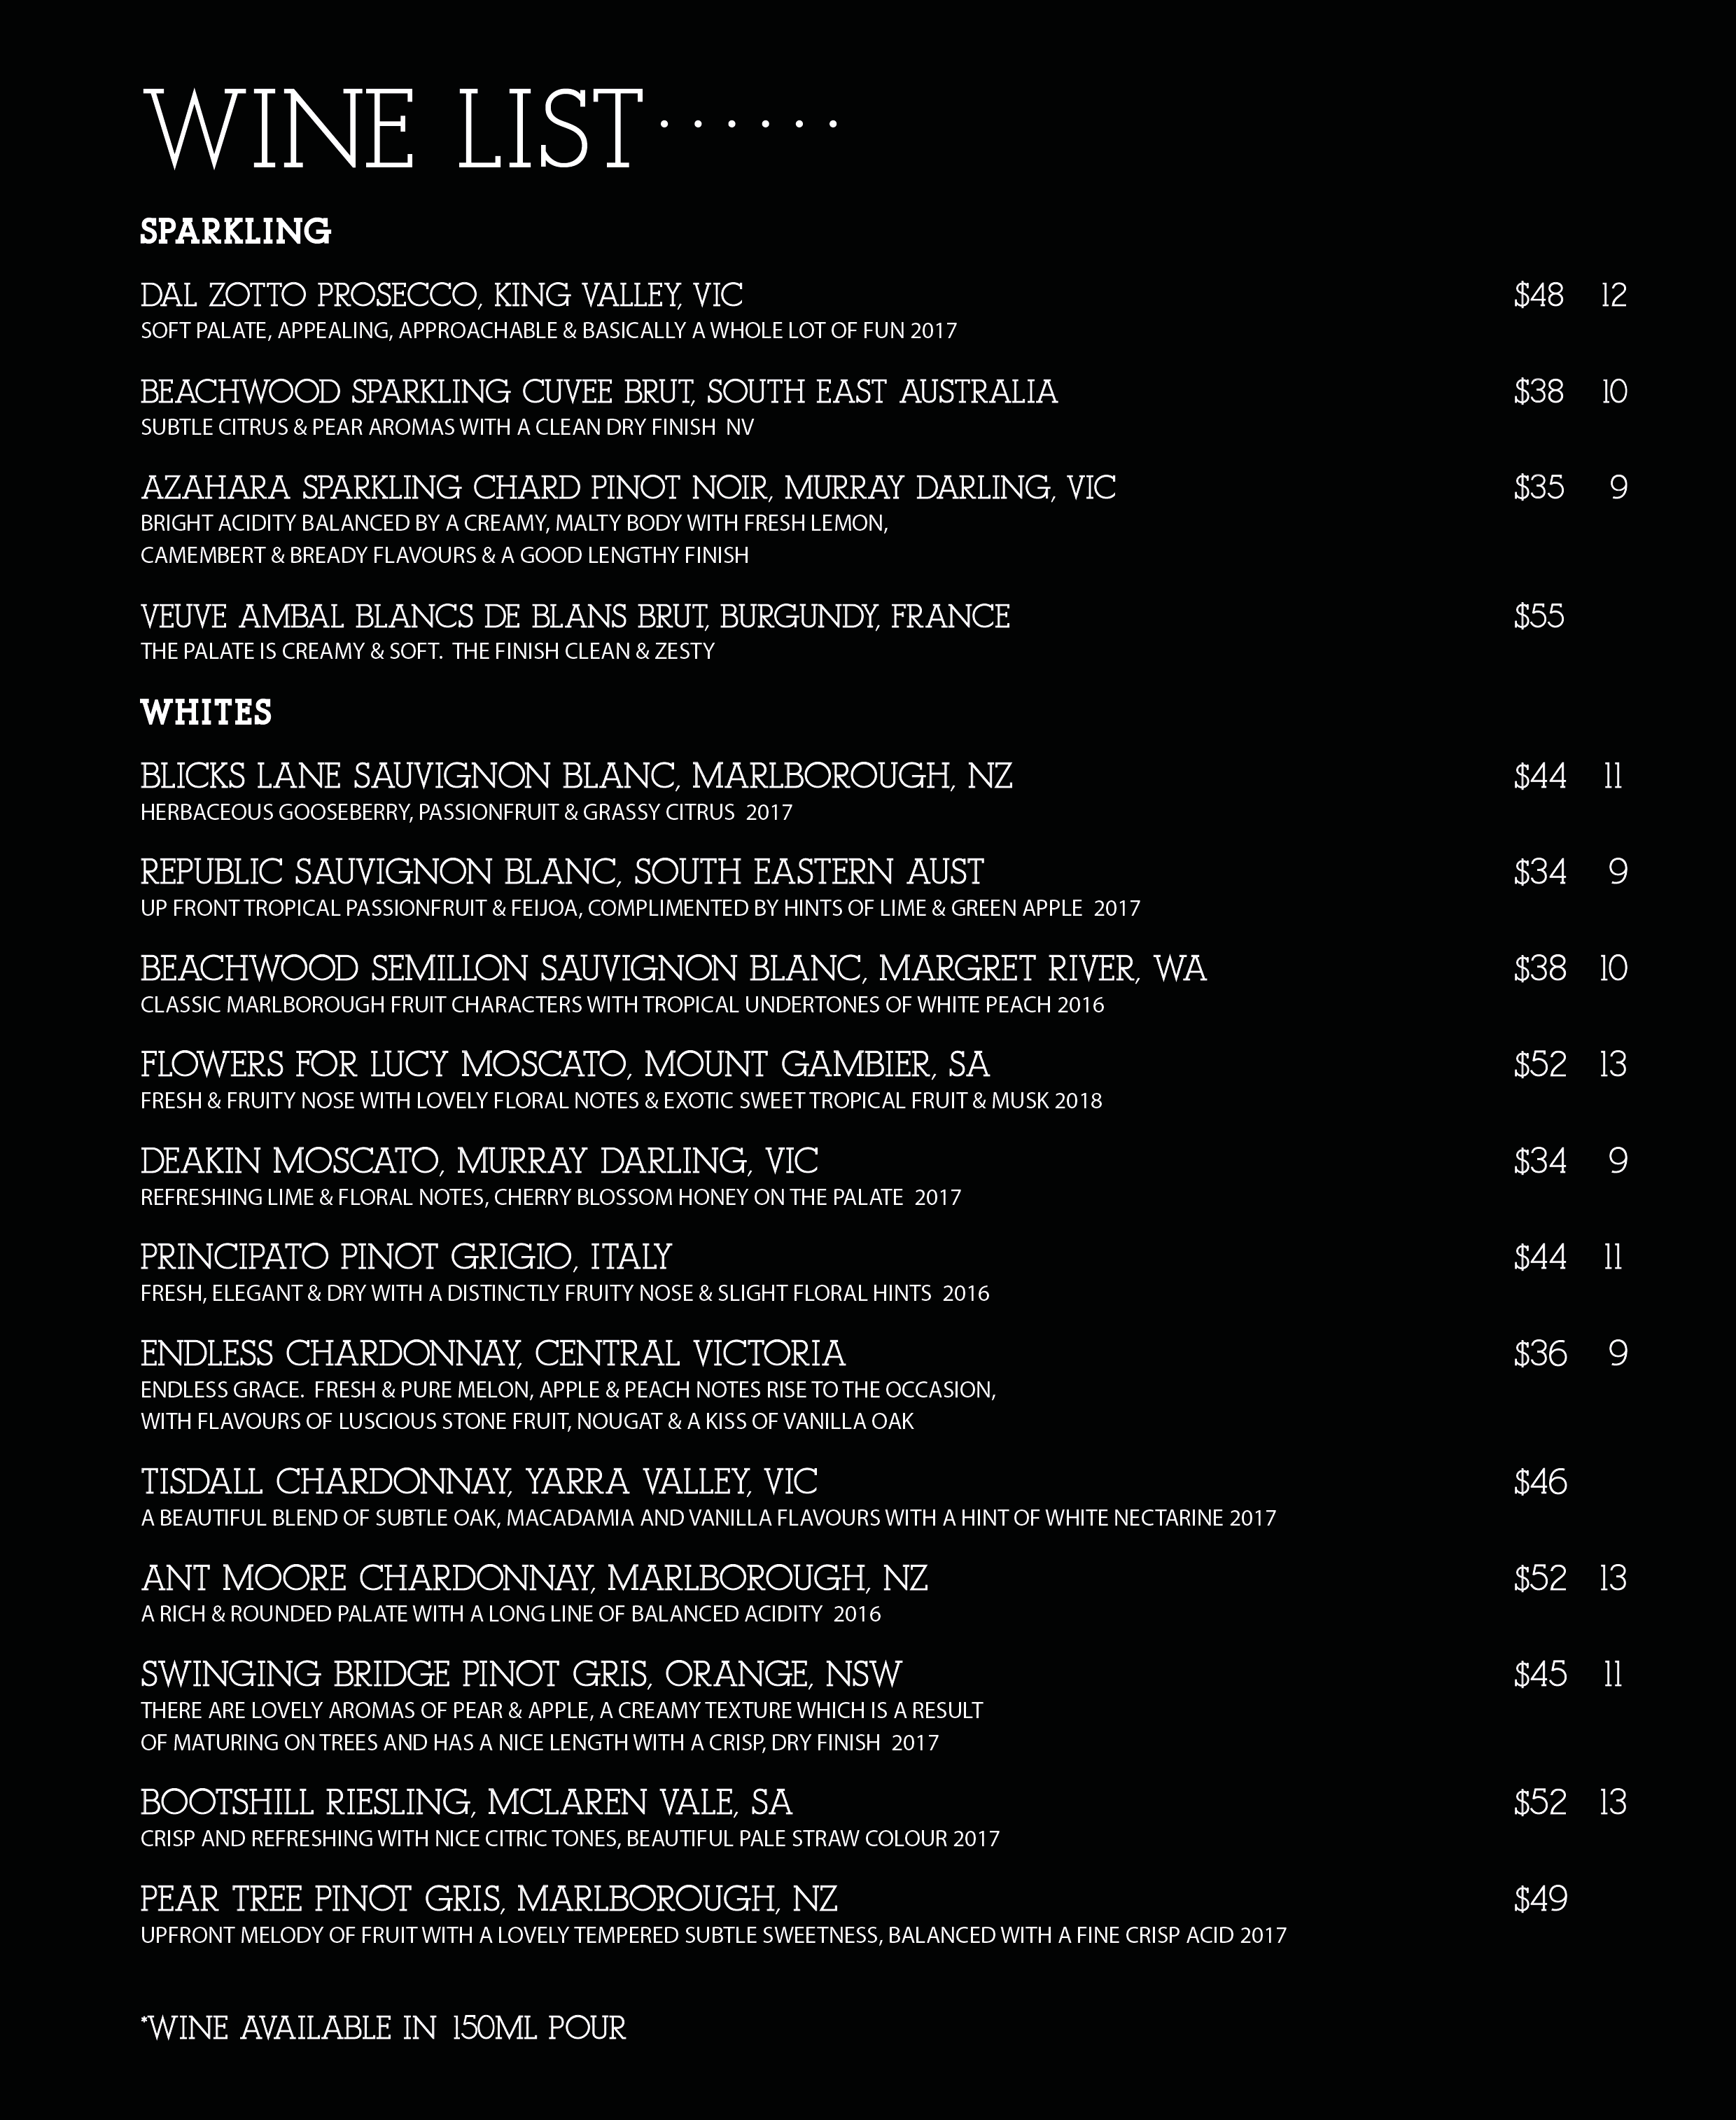 Wine List 1 Aug 2018 Mr Jones Menu 08